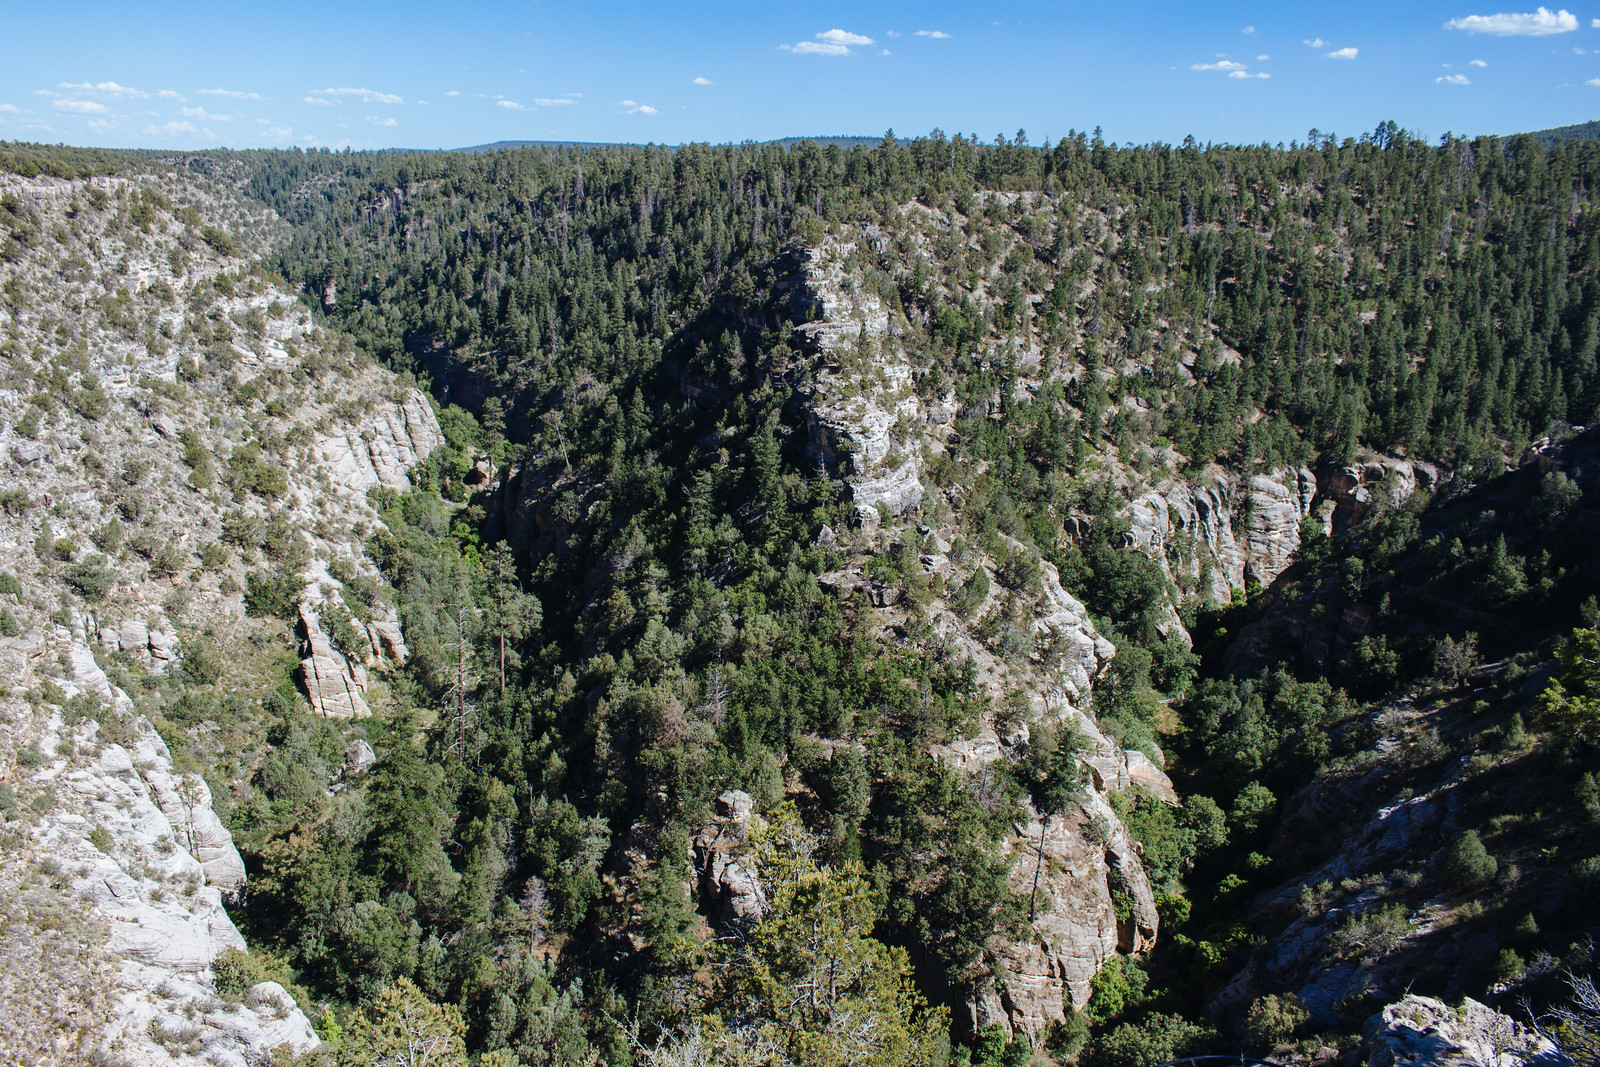 View of a canyon covered by trees